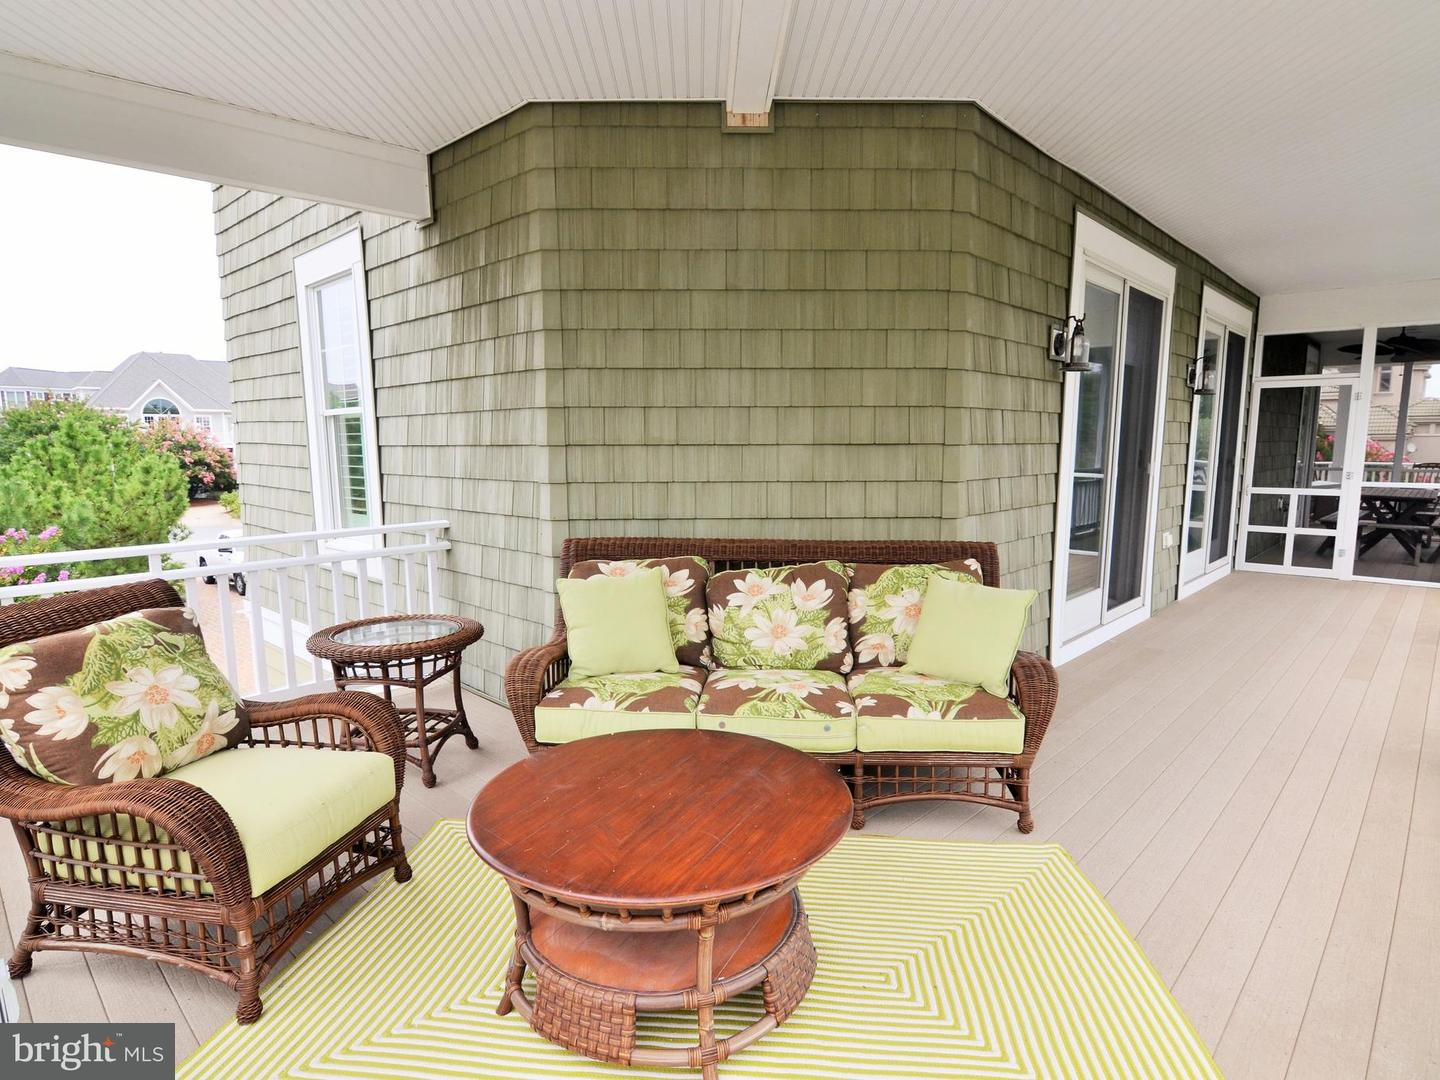 1002293530-300500807455-2018-09-25-15-08-25 31 Hall Ave | Rehoboth Beach, De Real Estate For Sale | MLS# 1002293530  - Suzanne Macnab